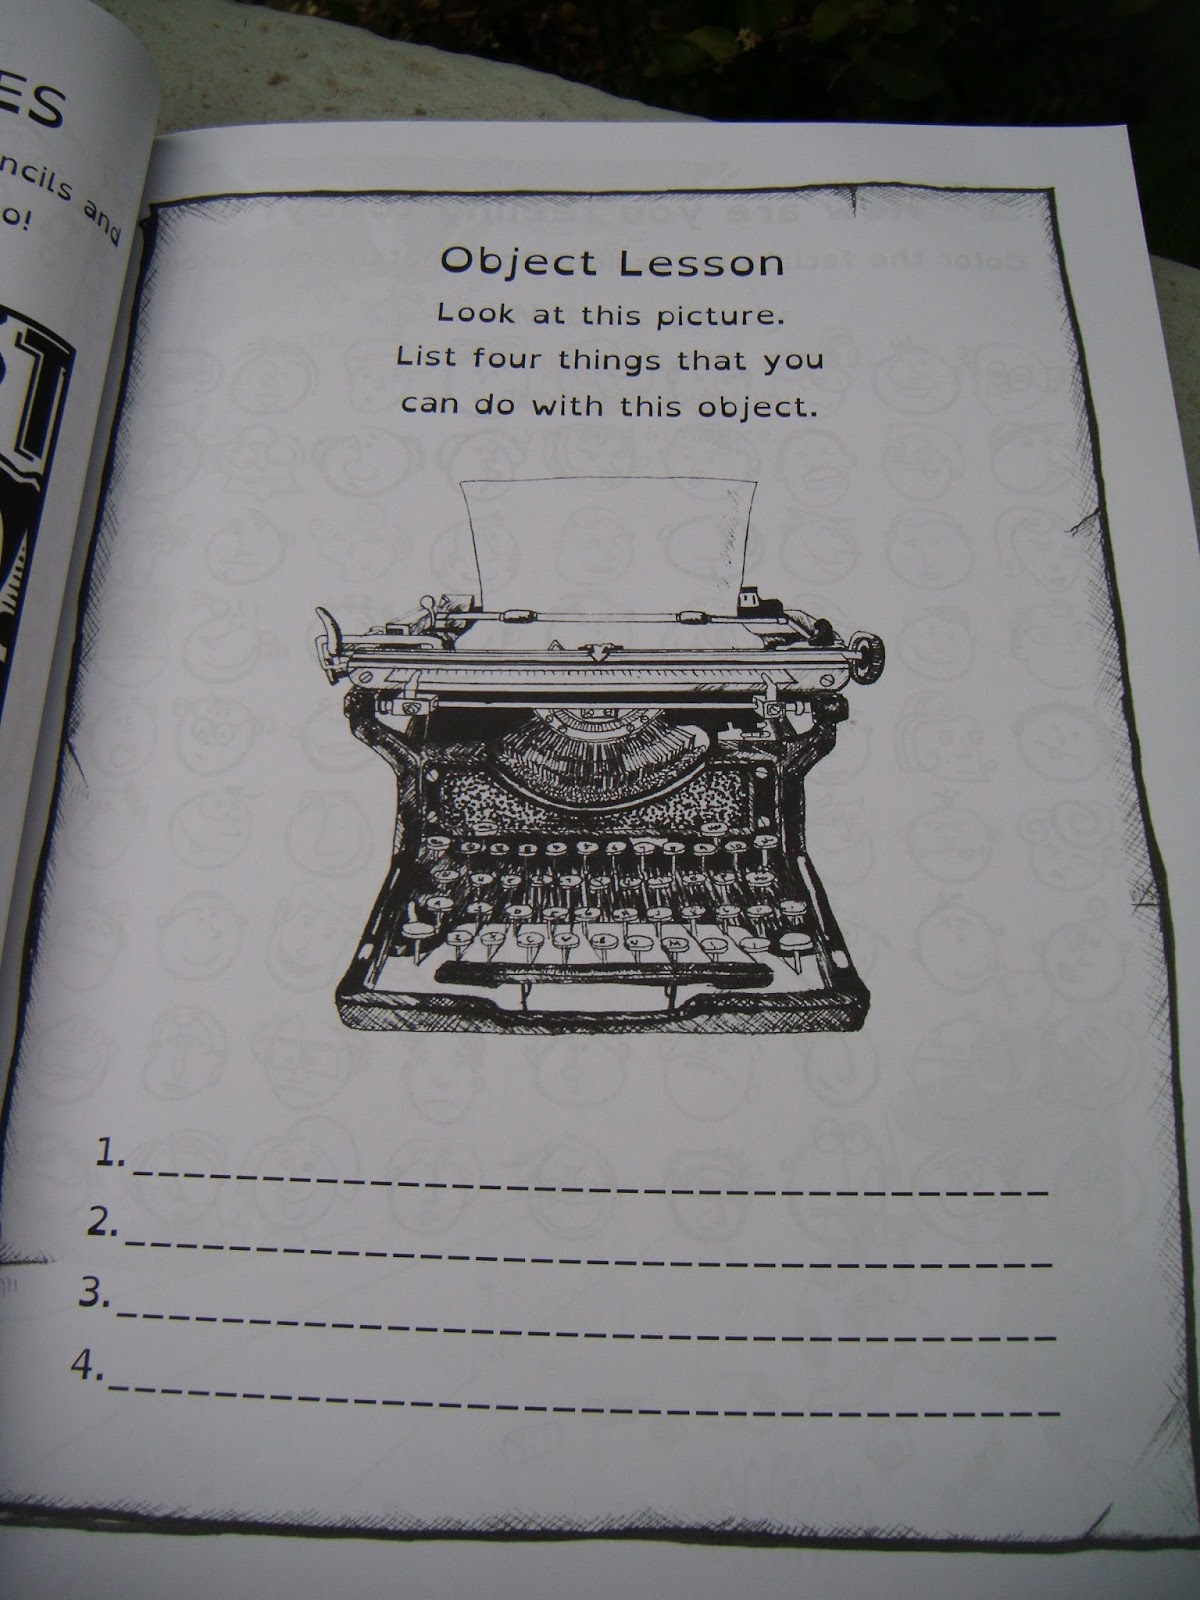 The abcd diaries homeschooling active boys journal by sarah janisse this workbook is appropriate for dyslexic students it includes art logic games to help with dyslexia and uses the open dyslexic font for easy reading solutioingenieria Choice Image